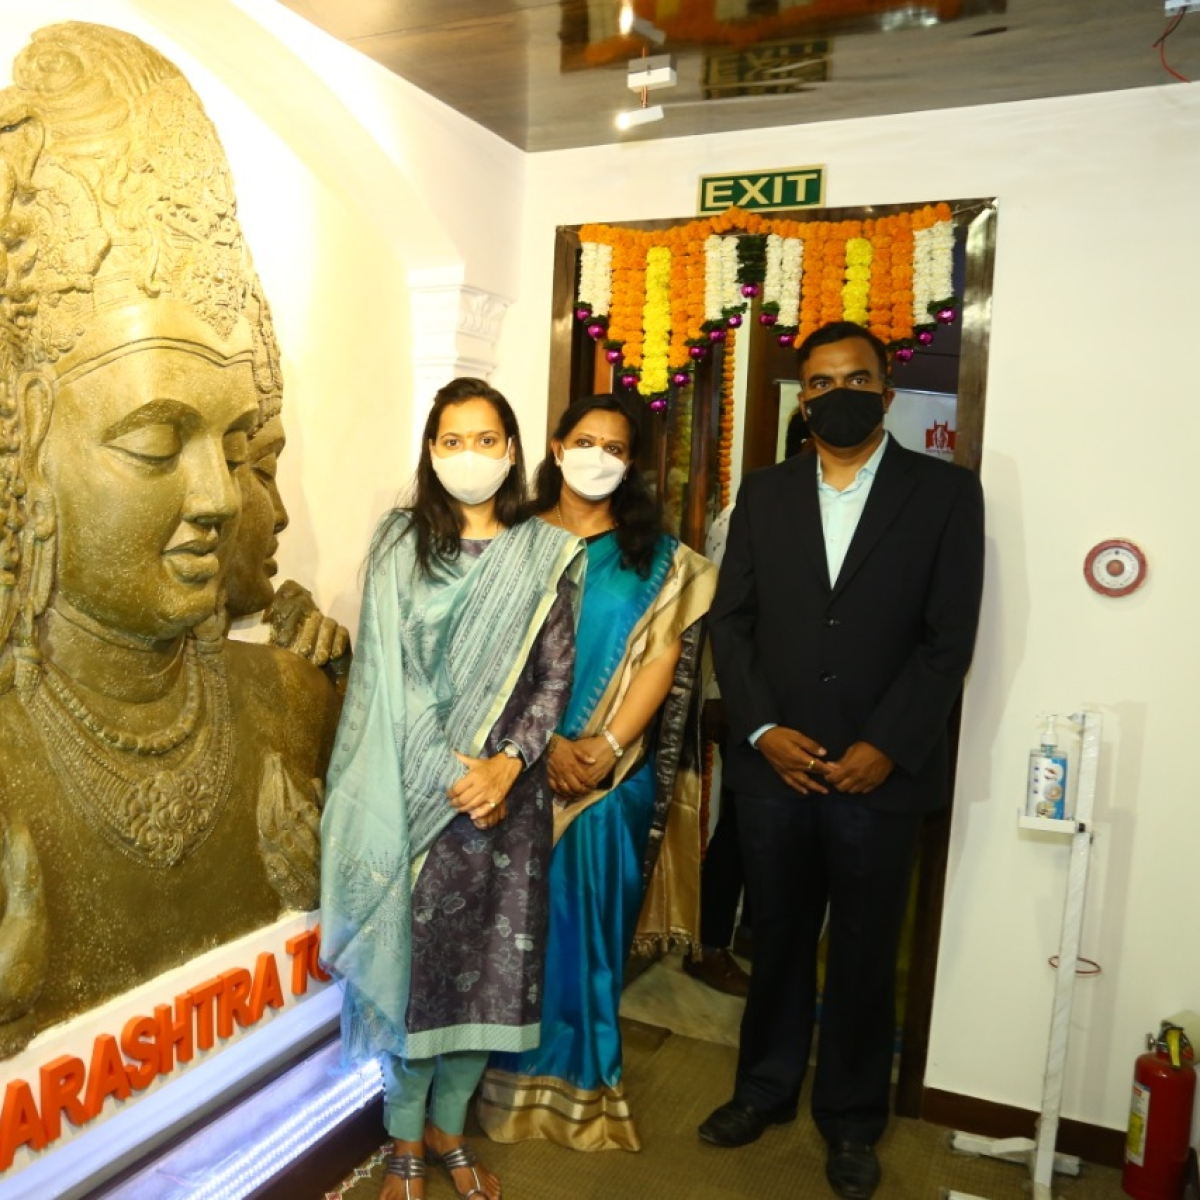 Maharashtra's Directorate of Tourism relocates to new office at Nariman Bhavan